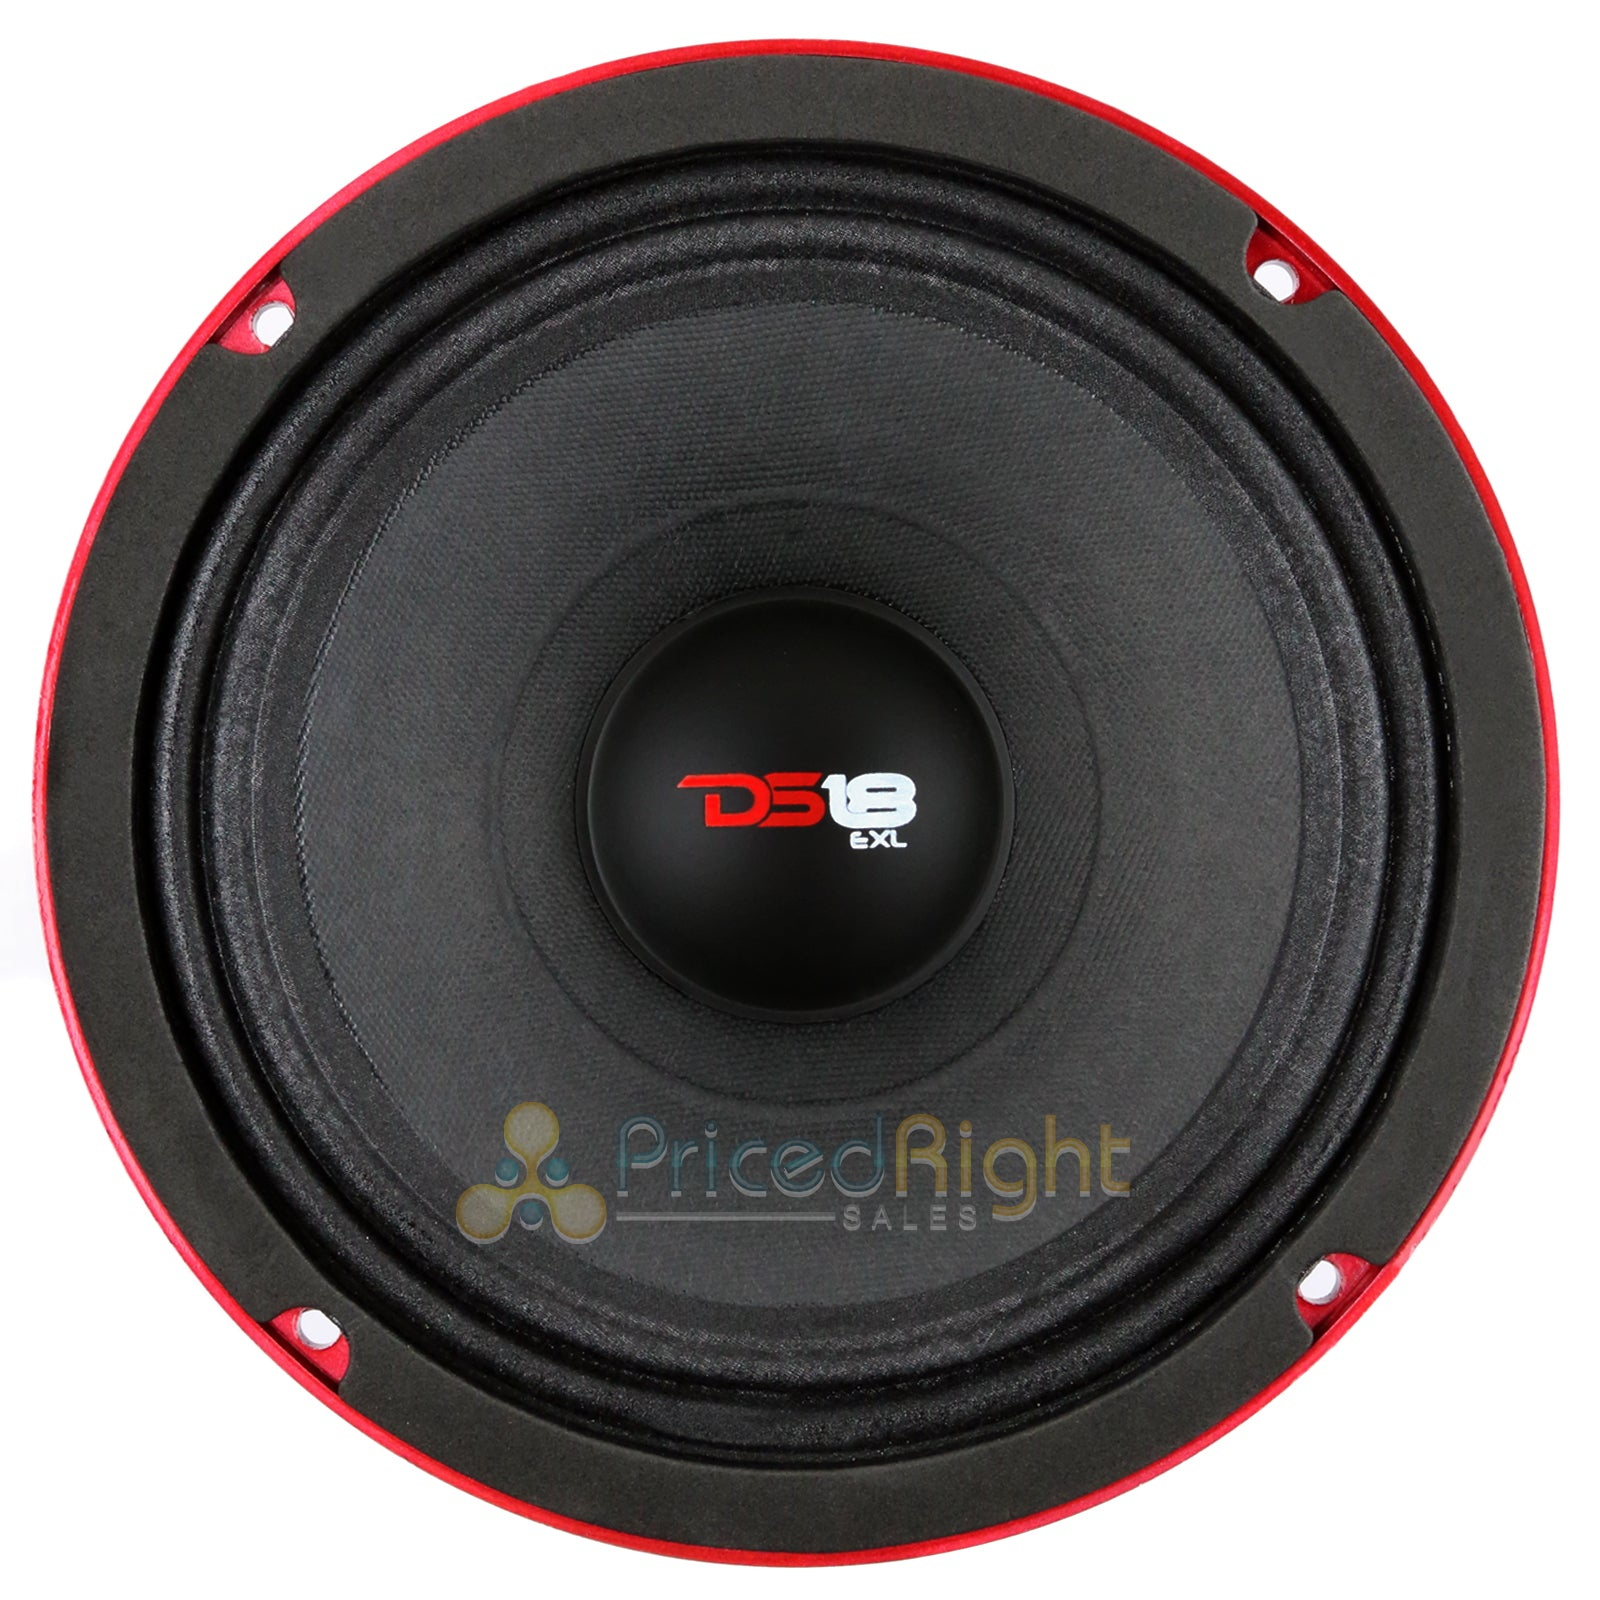 "DS18 PRO-EXL68 6.5"" Midrange Loudspeaker 600 Watts Max Power 8 Ohm Competition"